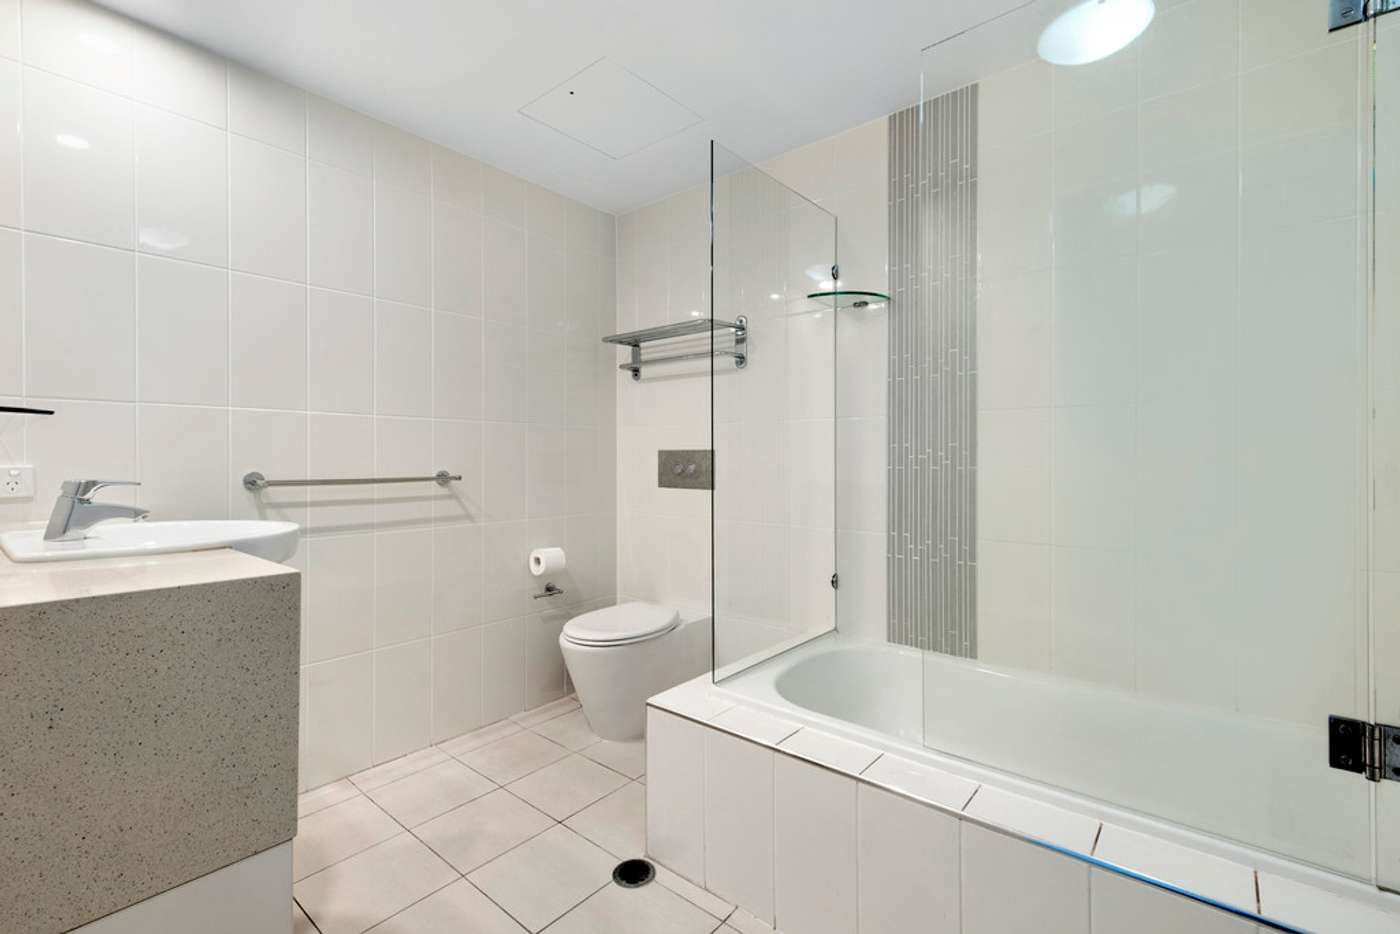 Sixth view of Homely apartment listing, 302/3018 Surfers Paradise Boulevard, Surfers Paradise QLD 4217